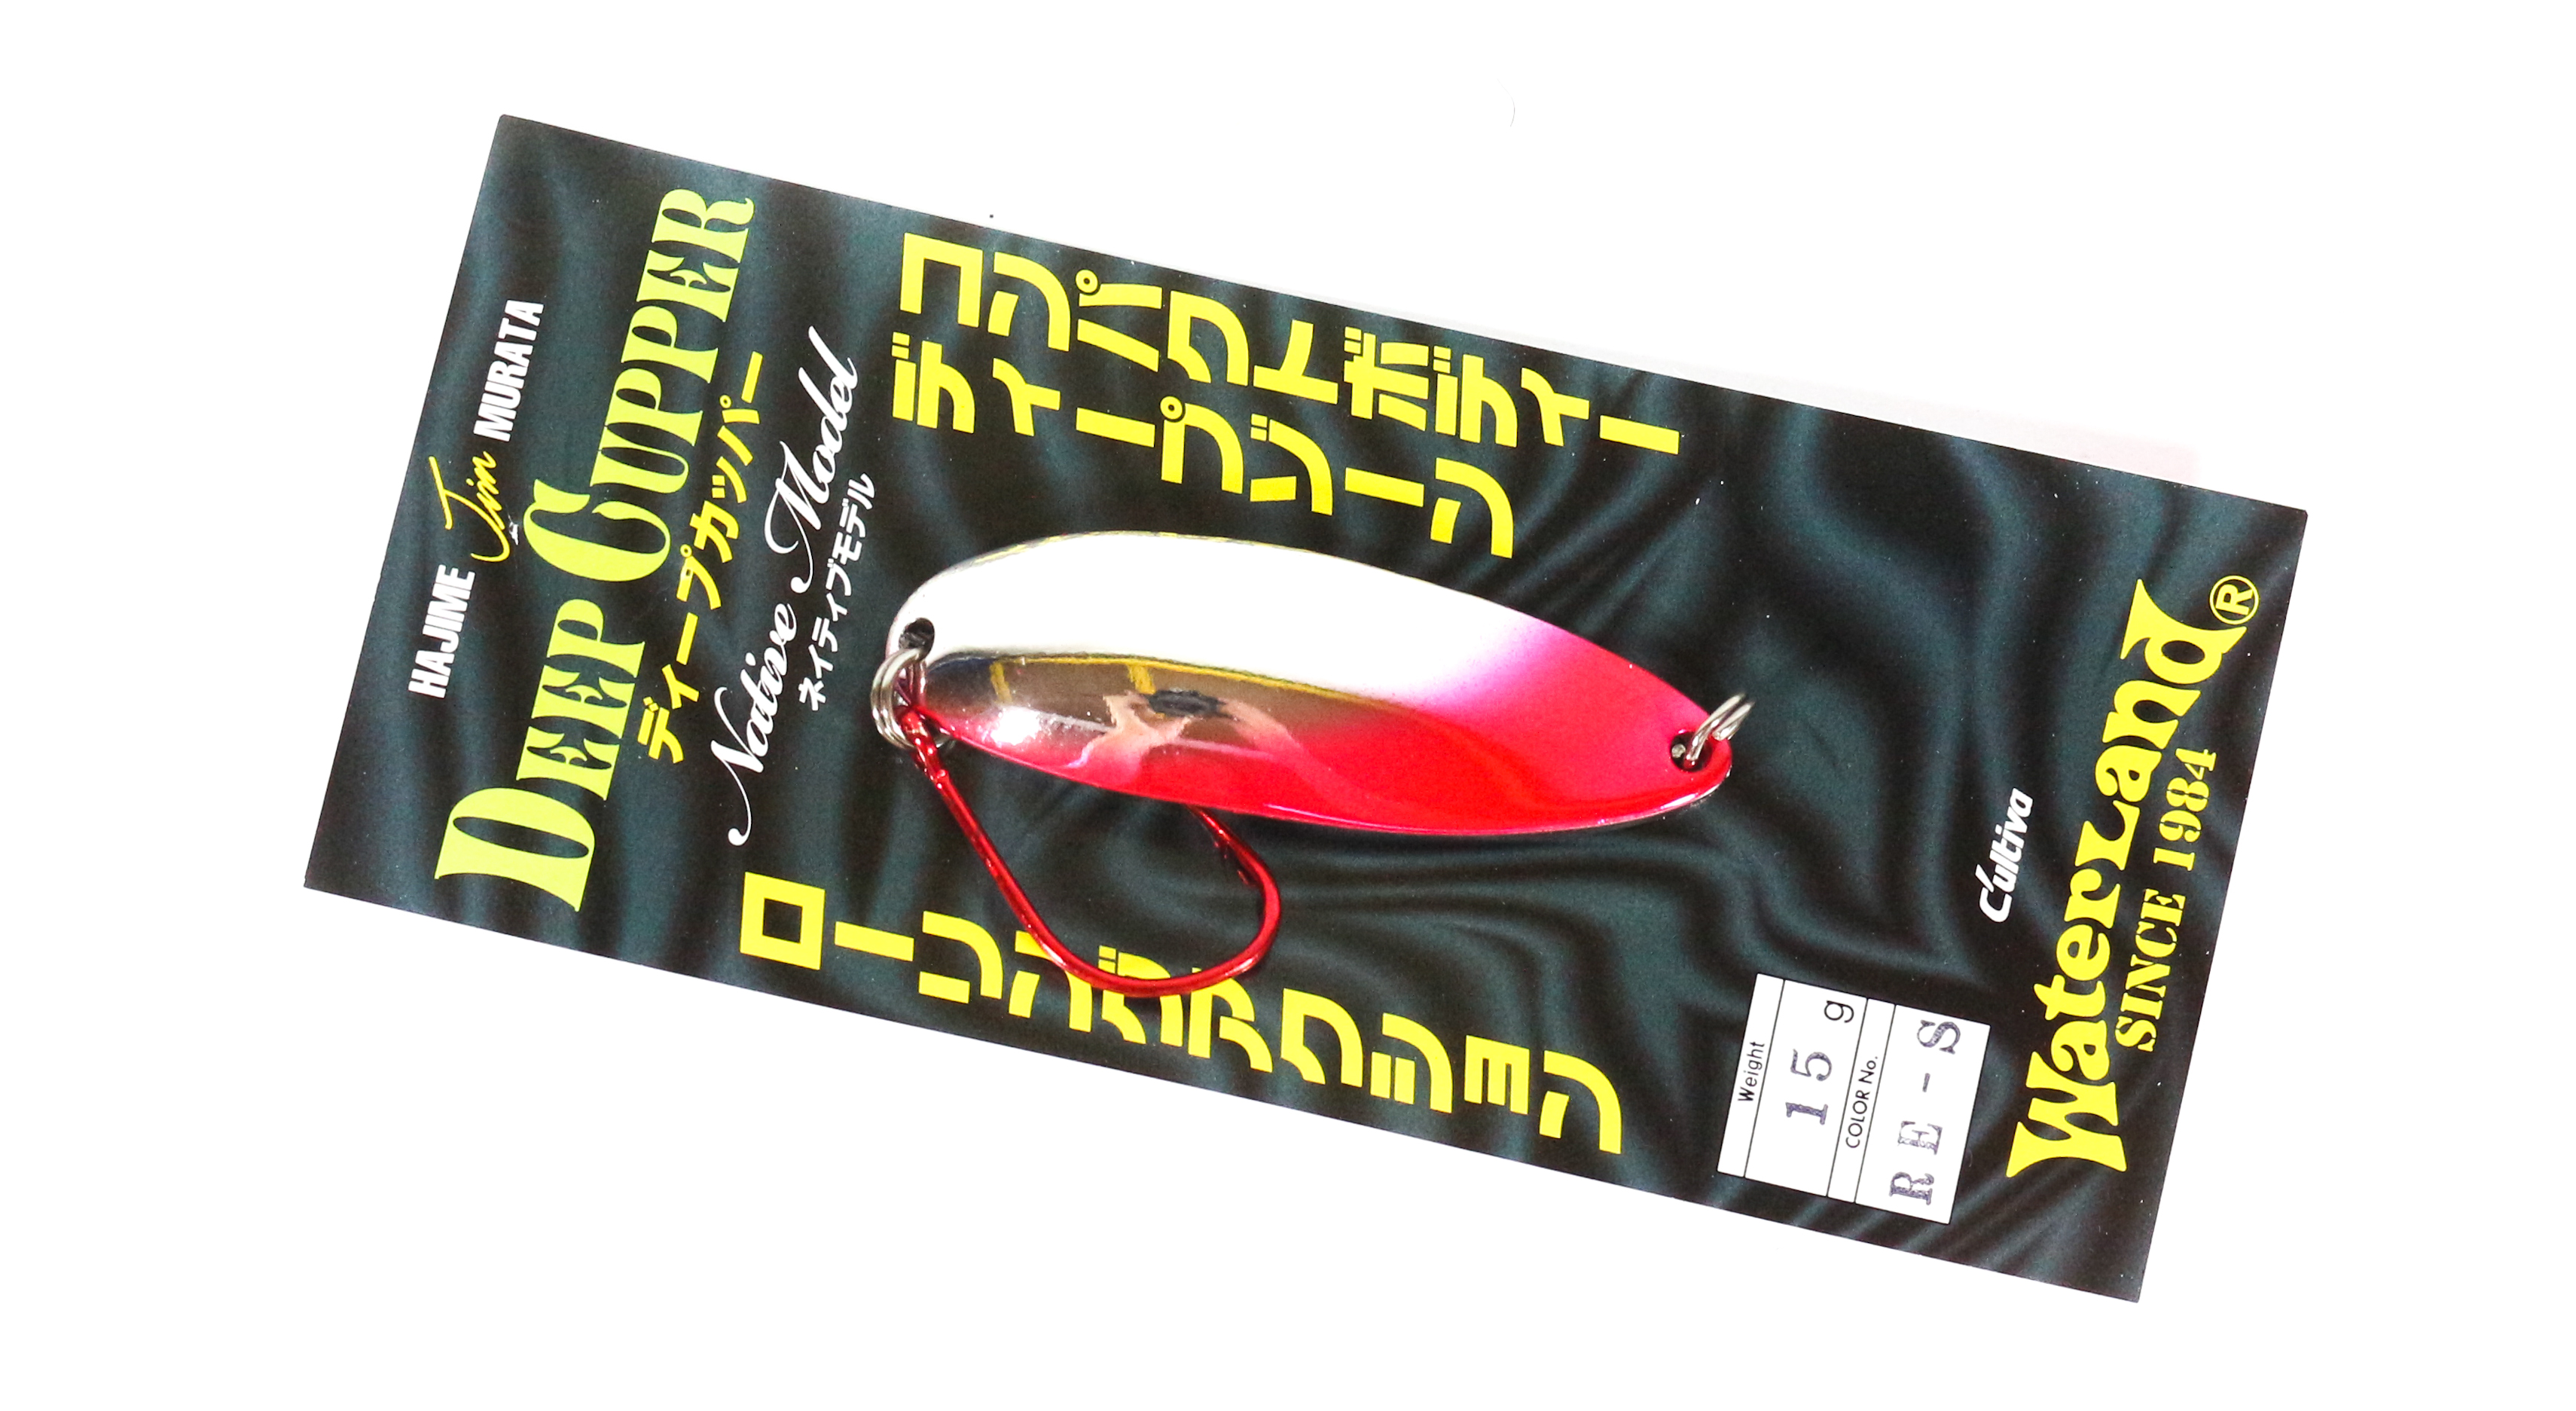 Water Land Spoon Deep Cupper Native 15 grams Sinking Lure RE-S (0908)